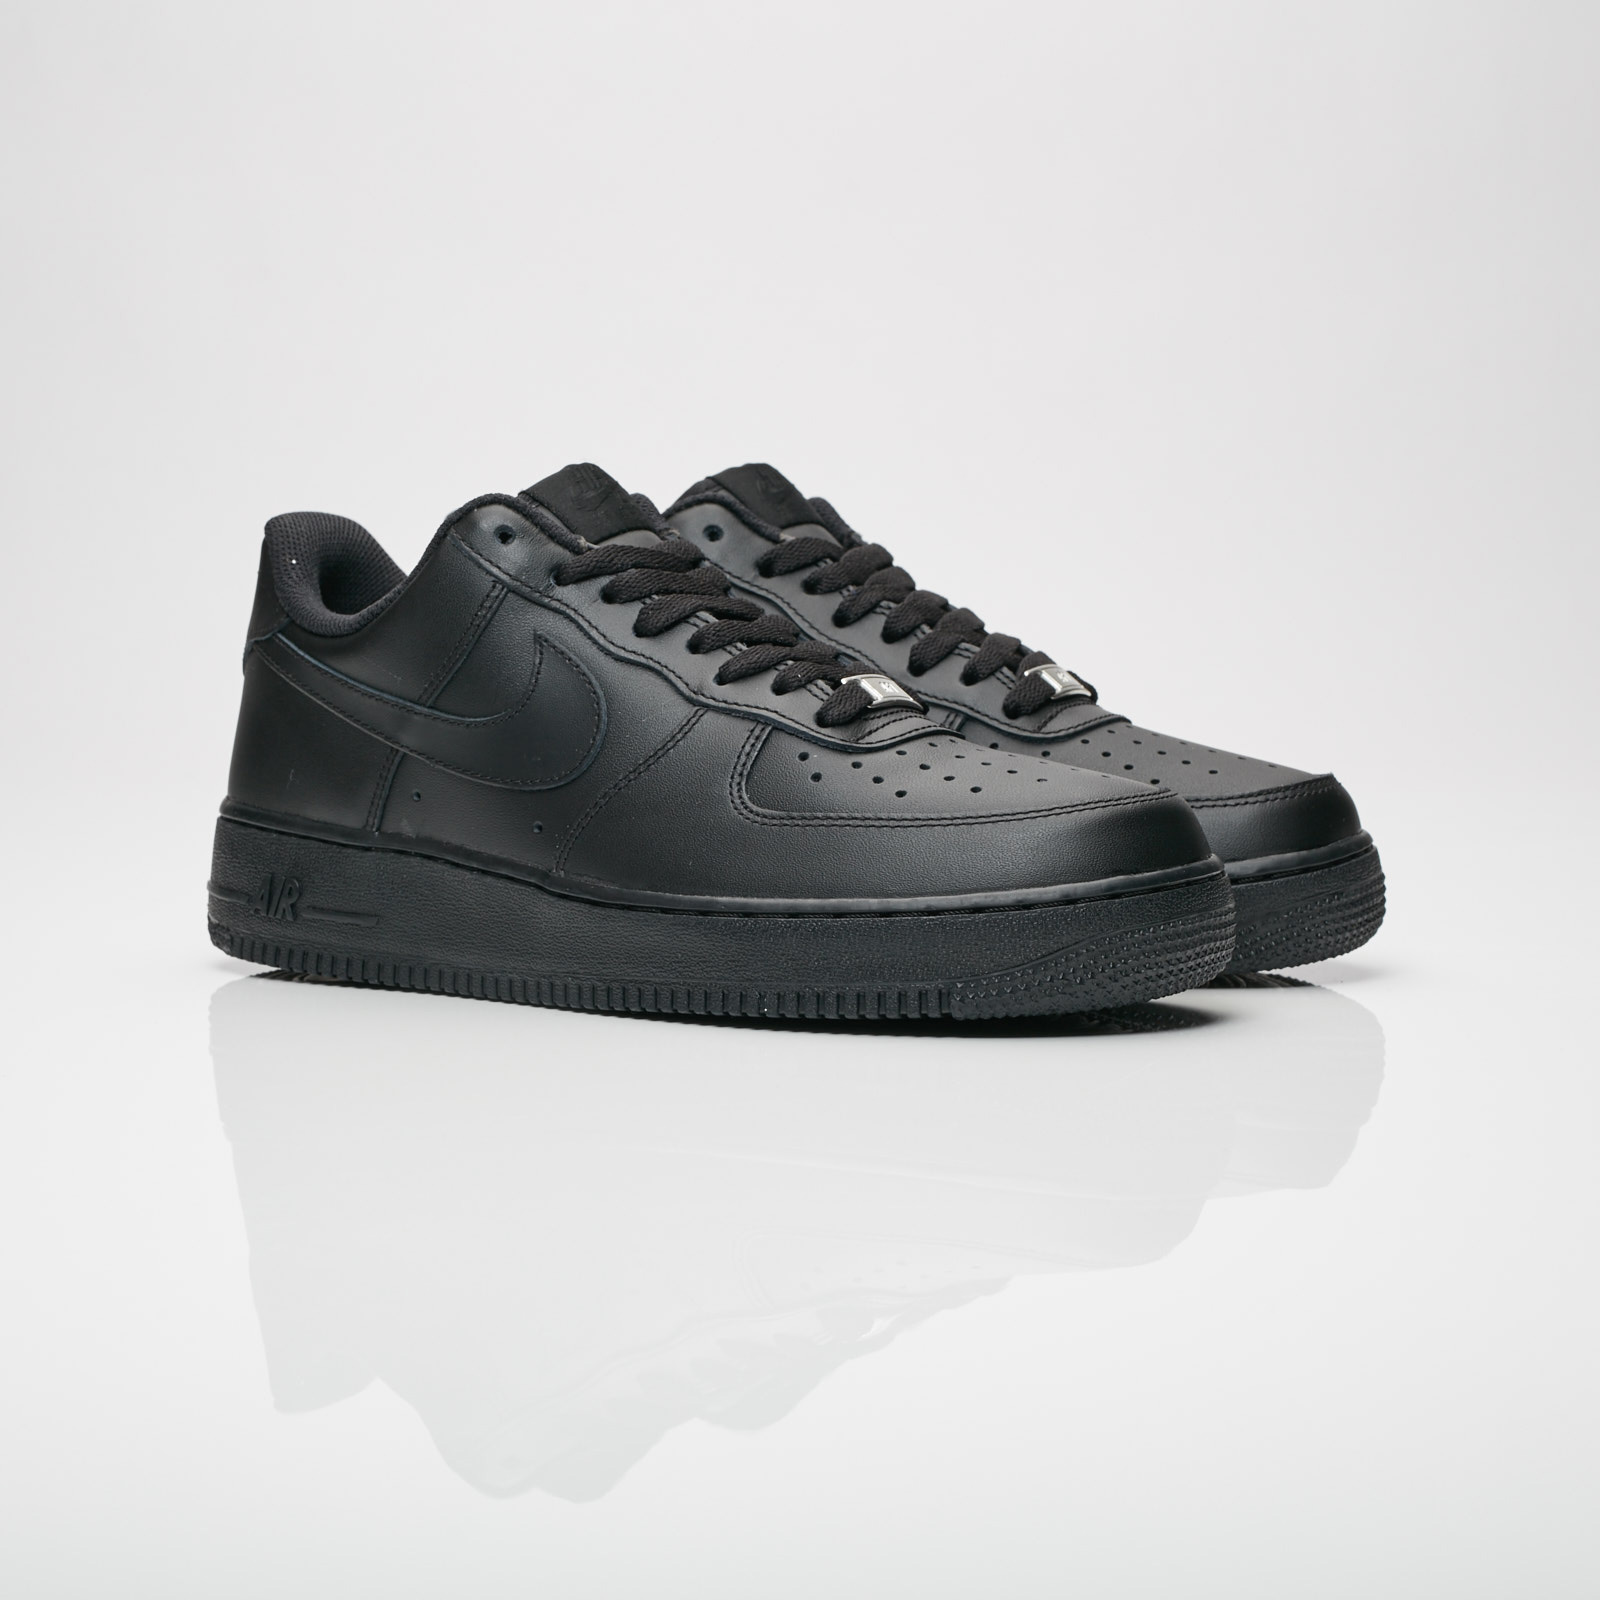 147a7ce26 Nike Air Force 1 07 - 315122-001 - Sneakersnstuff